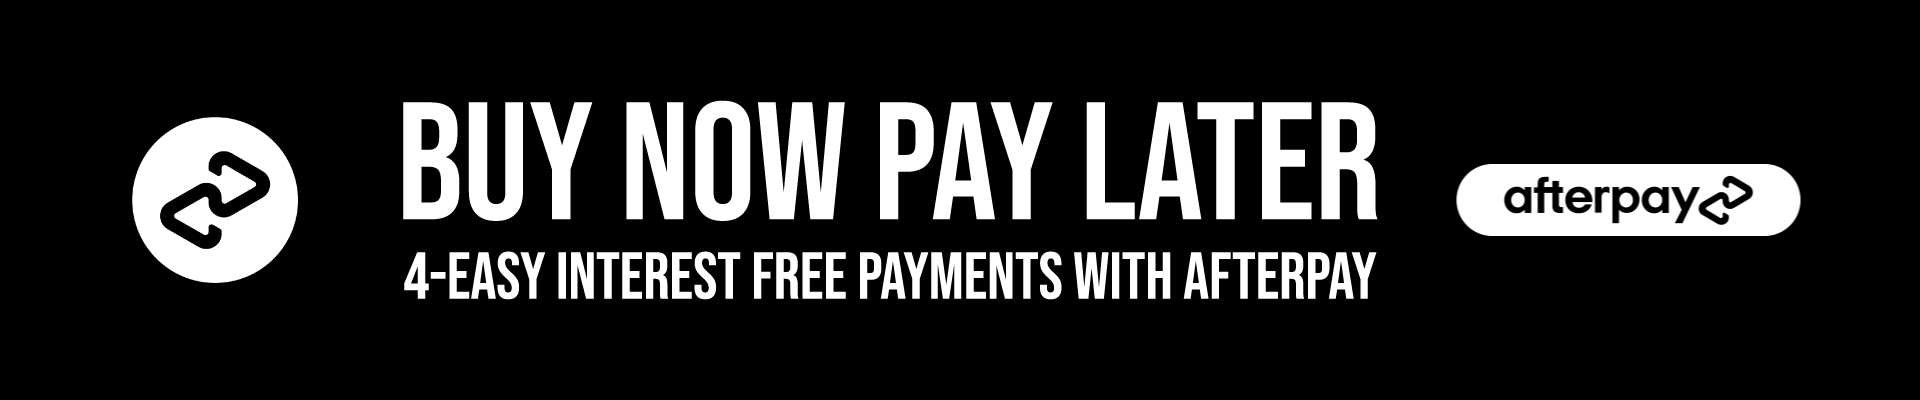 Fashion House - Buy Now Pay Later Available Now. 4-EASY Interest Free Payments with Afterpay. Shop our web shop at fashionhouseusa.com